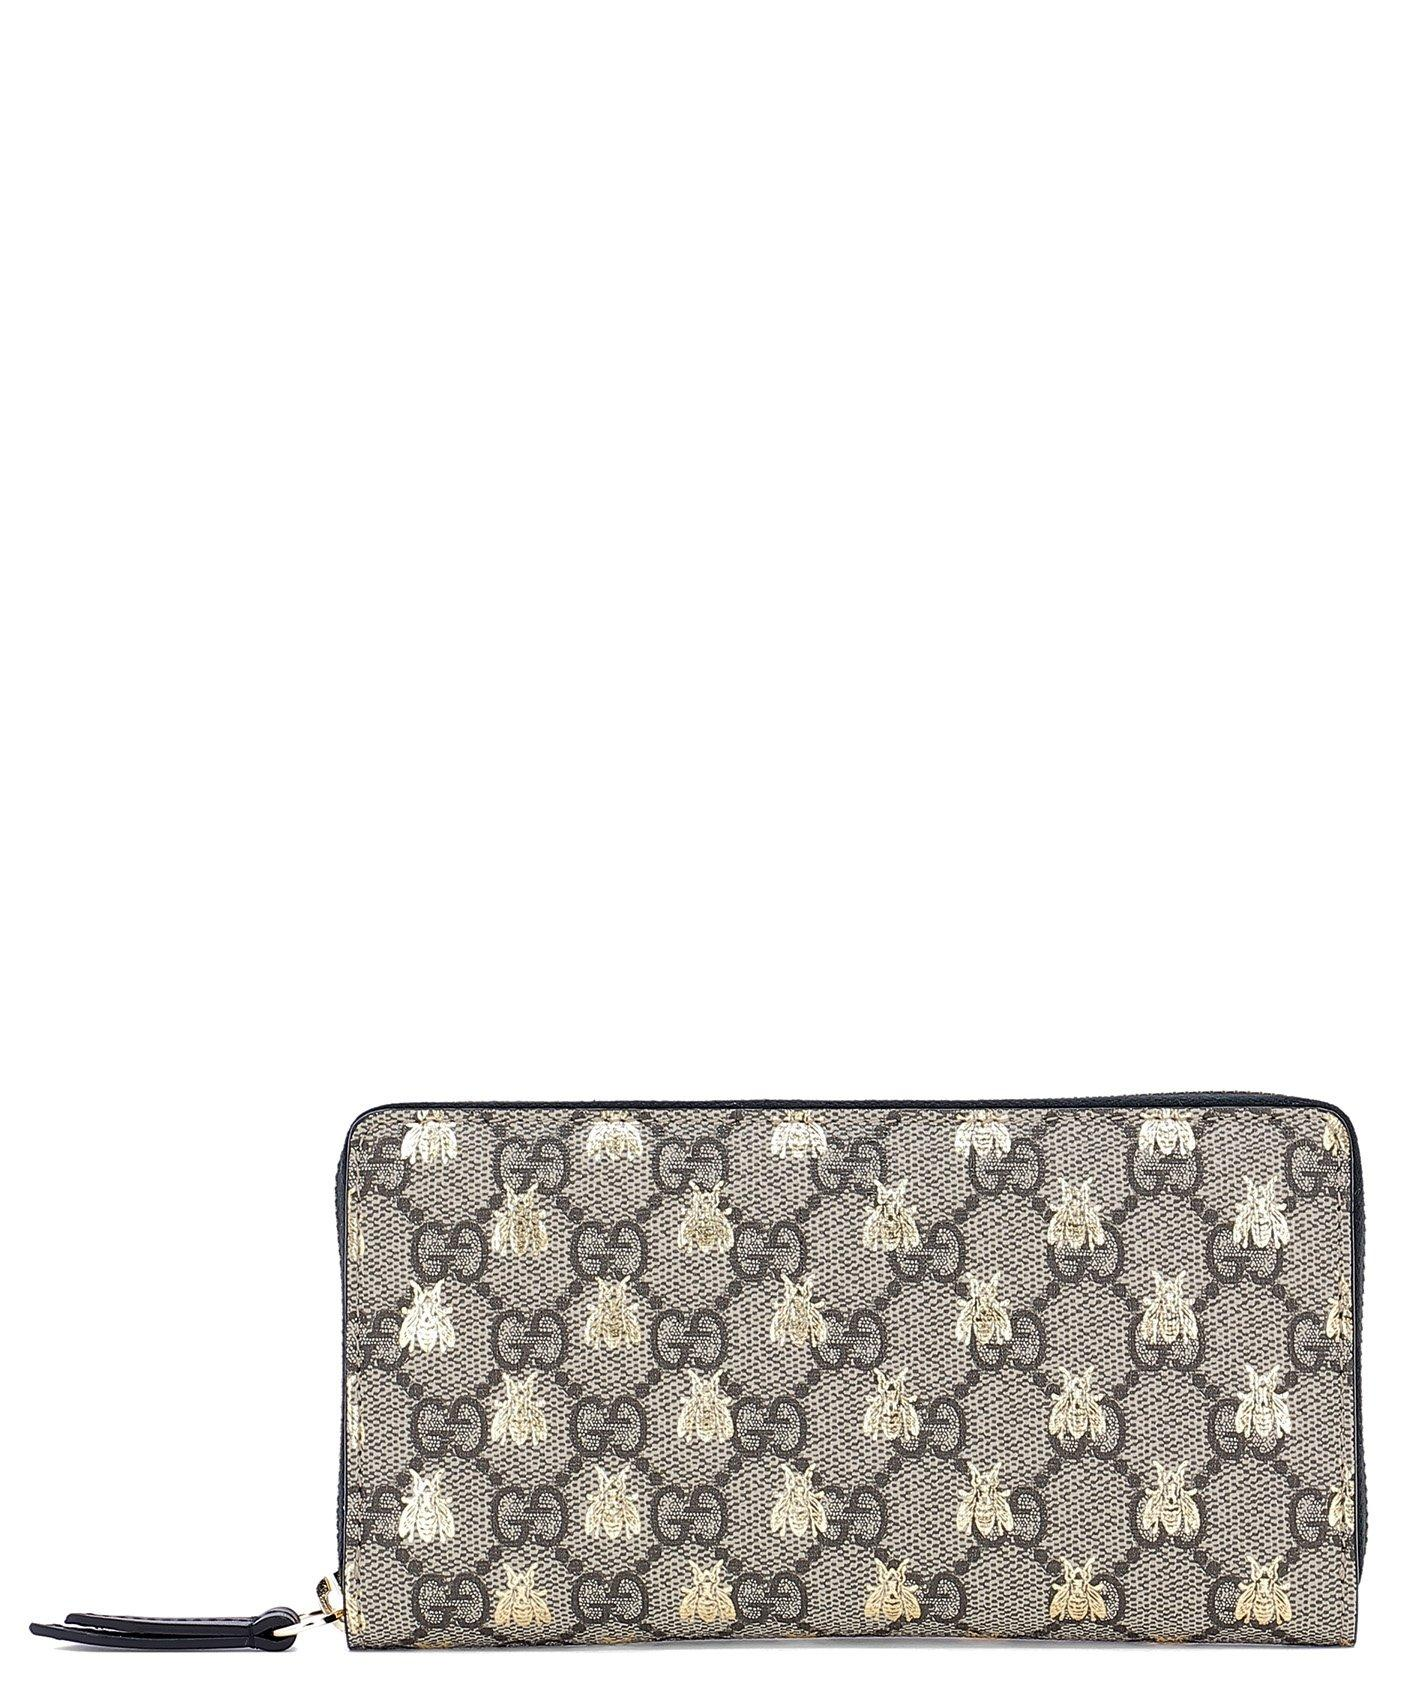 bea6d8bf0f0140 Lyst - Gucci GG Supreme Wallet in Metallic